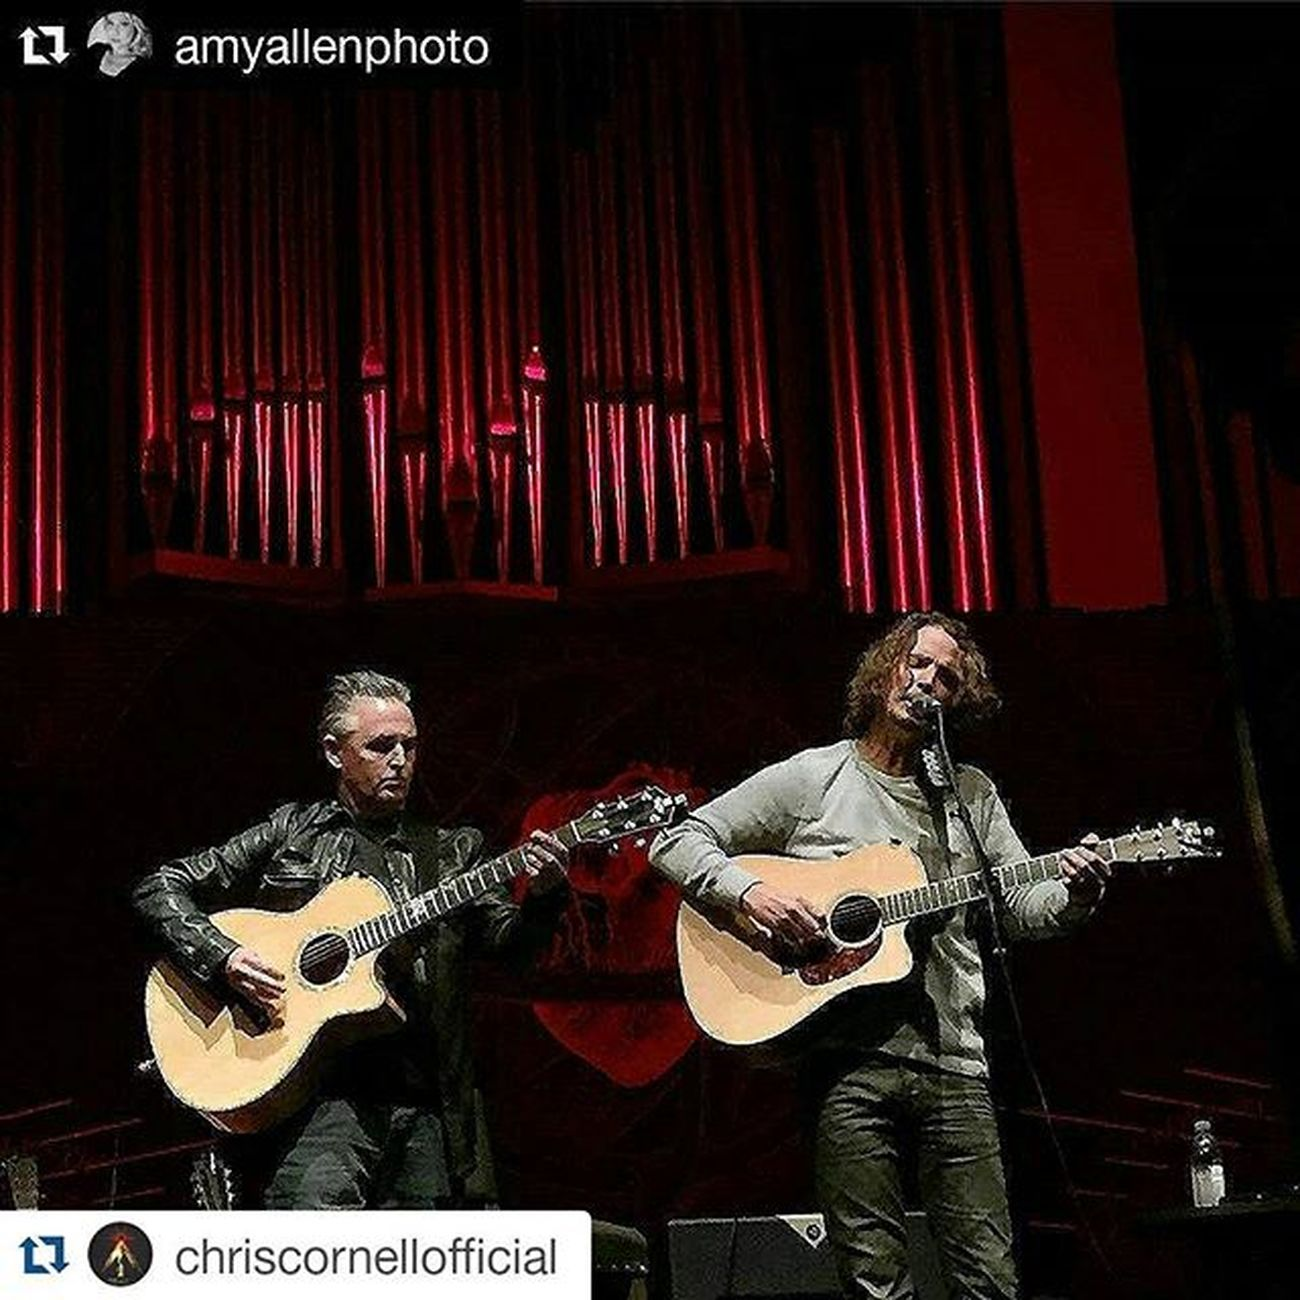 Photographic evidence that all is right with the world Repost @chriscornellofficial with @repostapp ・・・ Repost @amyallenphoto with @repostapp ・・・ Chriscornell @chriscornellofficial @benaroyahall Mikemccready @mikemccreadyfans @pearljam